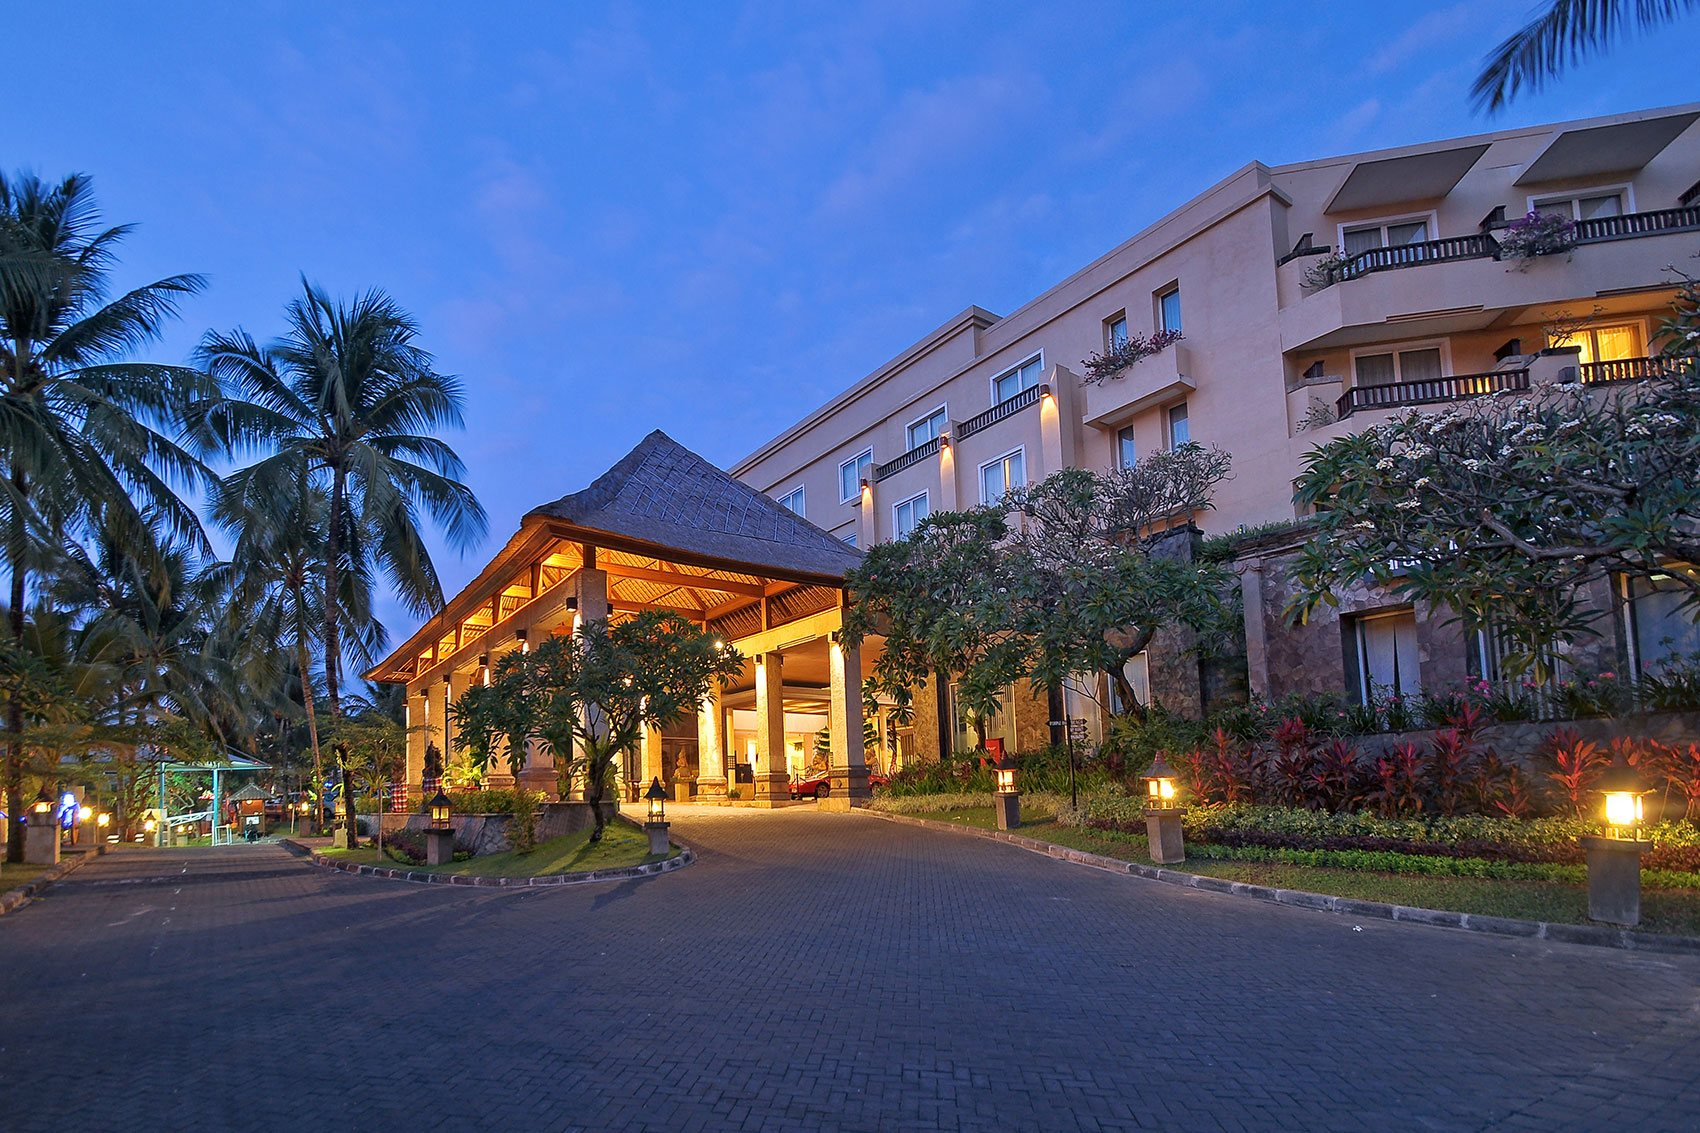 Hotel In Kuta Bali Paradiso The Official Website Voucher Value Indonesia 123456